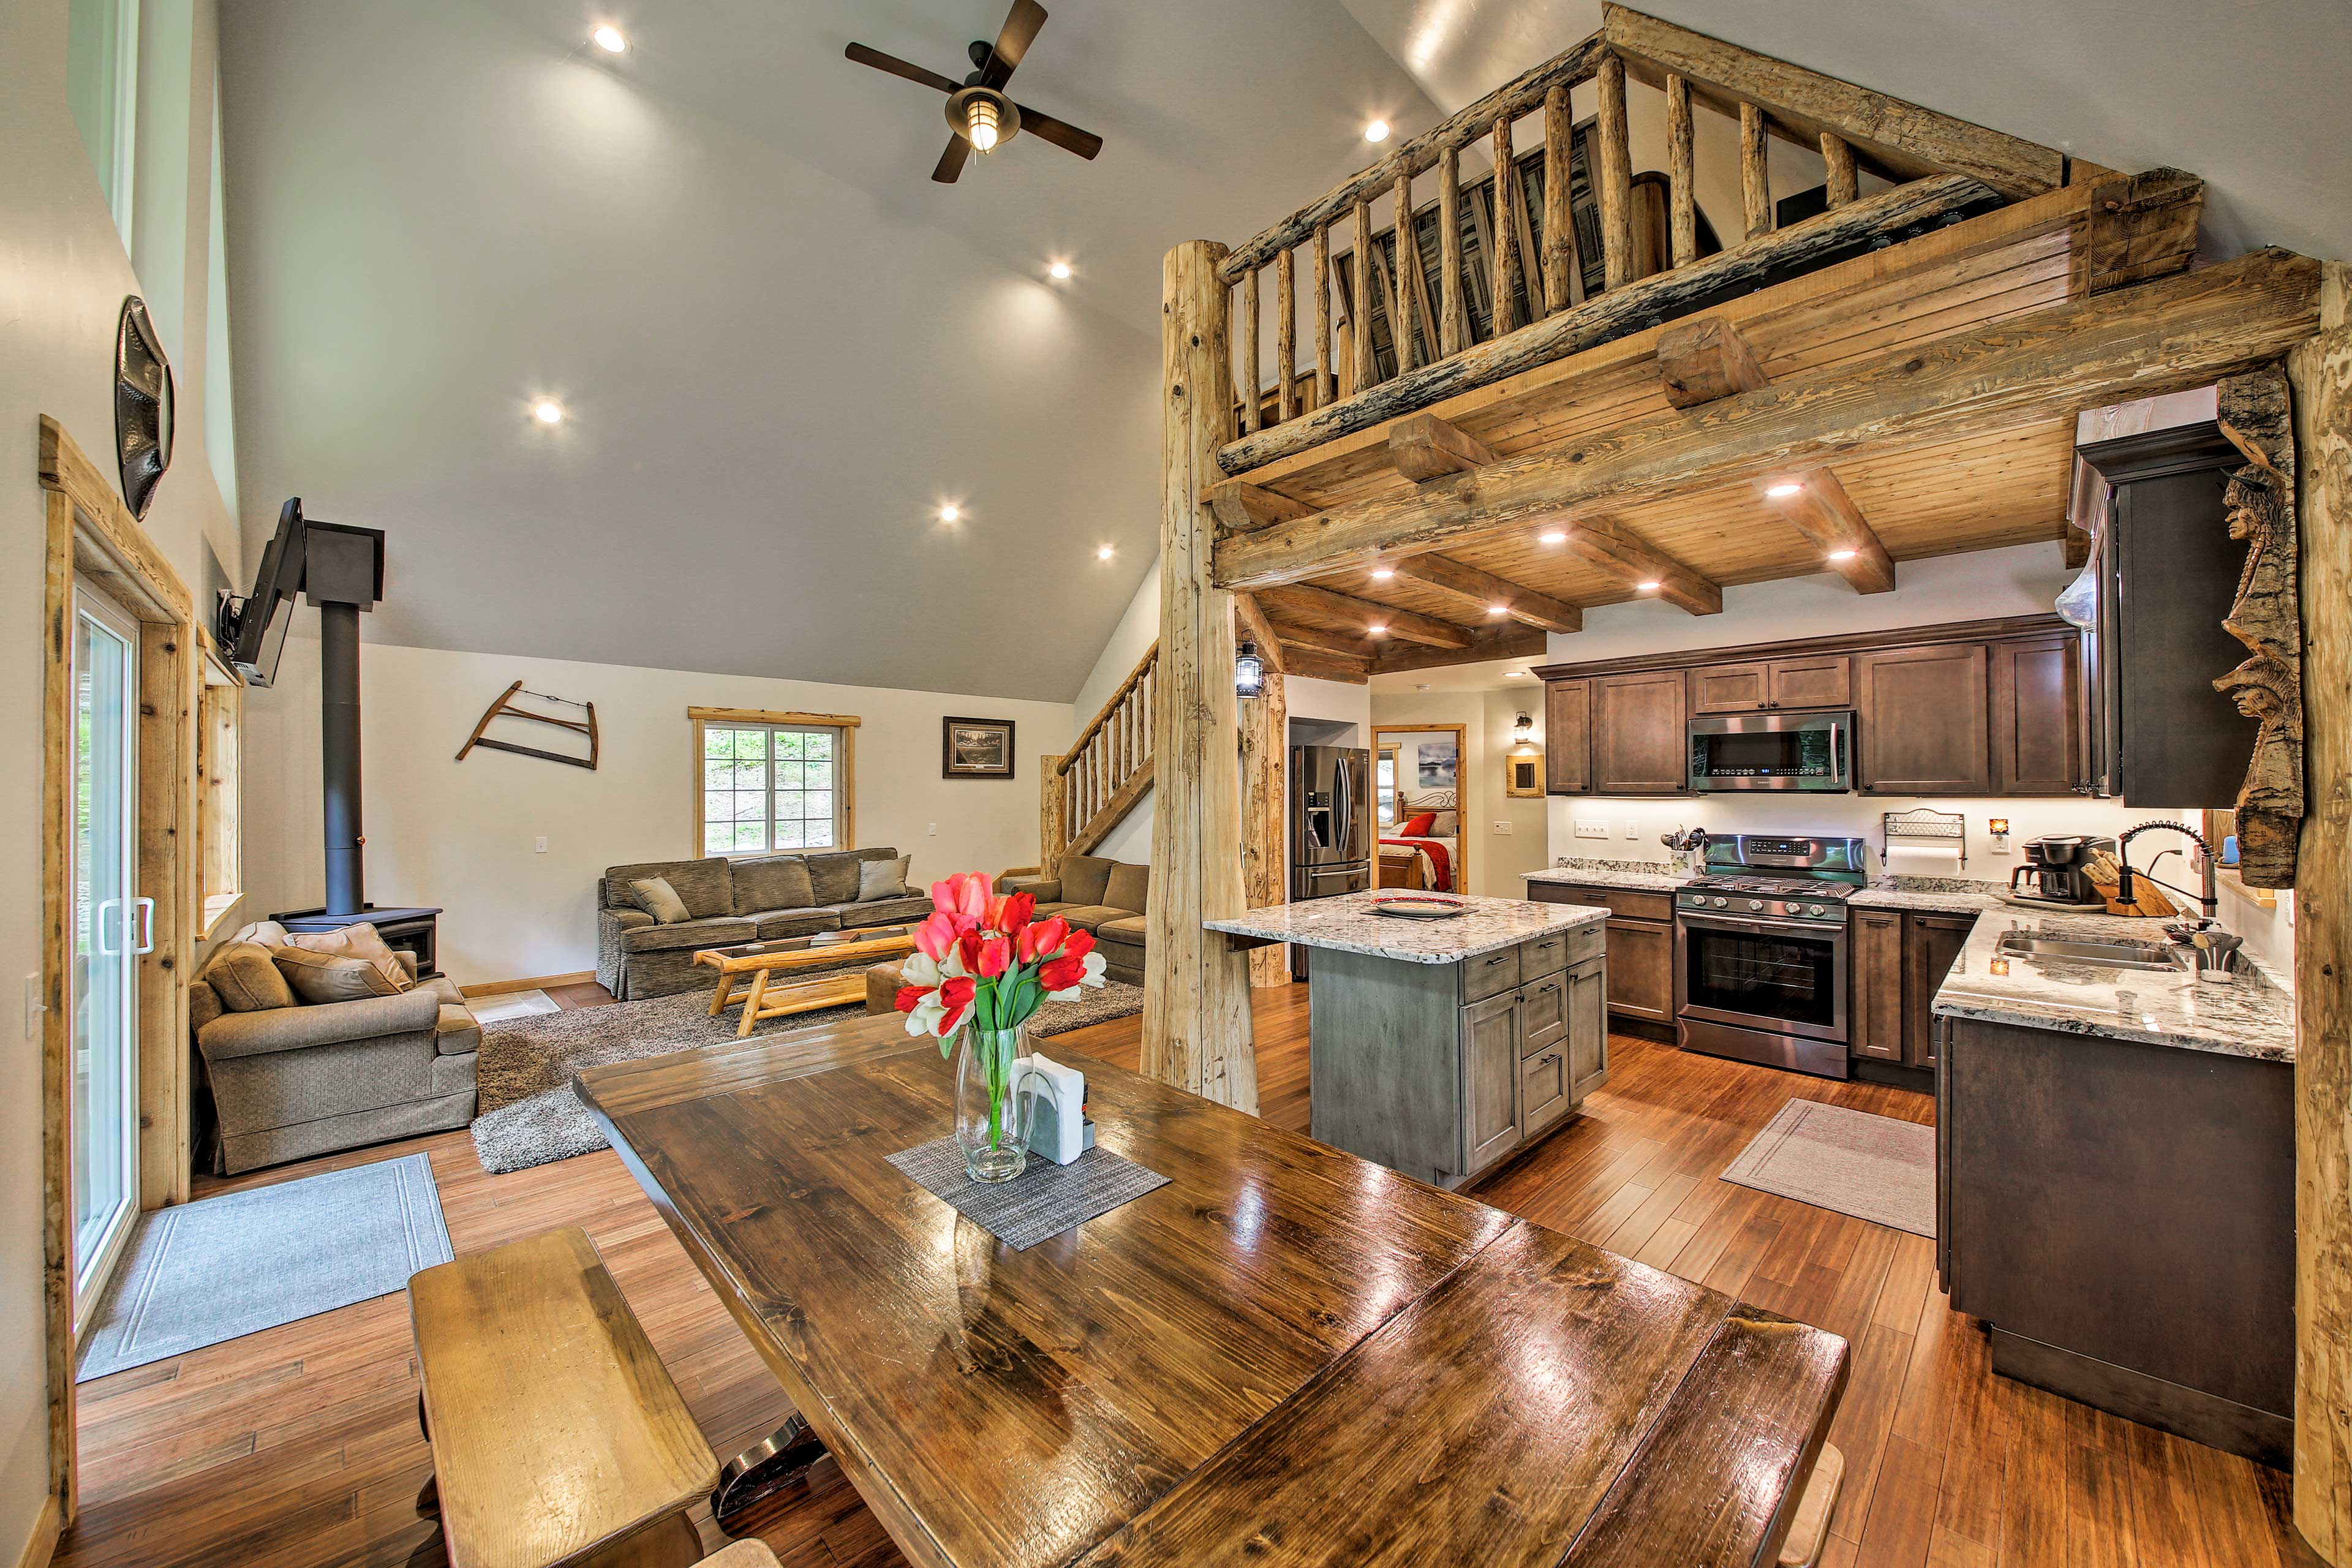 Up to 9 lucky vacationers can unwind in this 3-bedroom, 2-bath home!